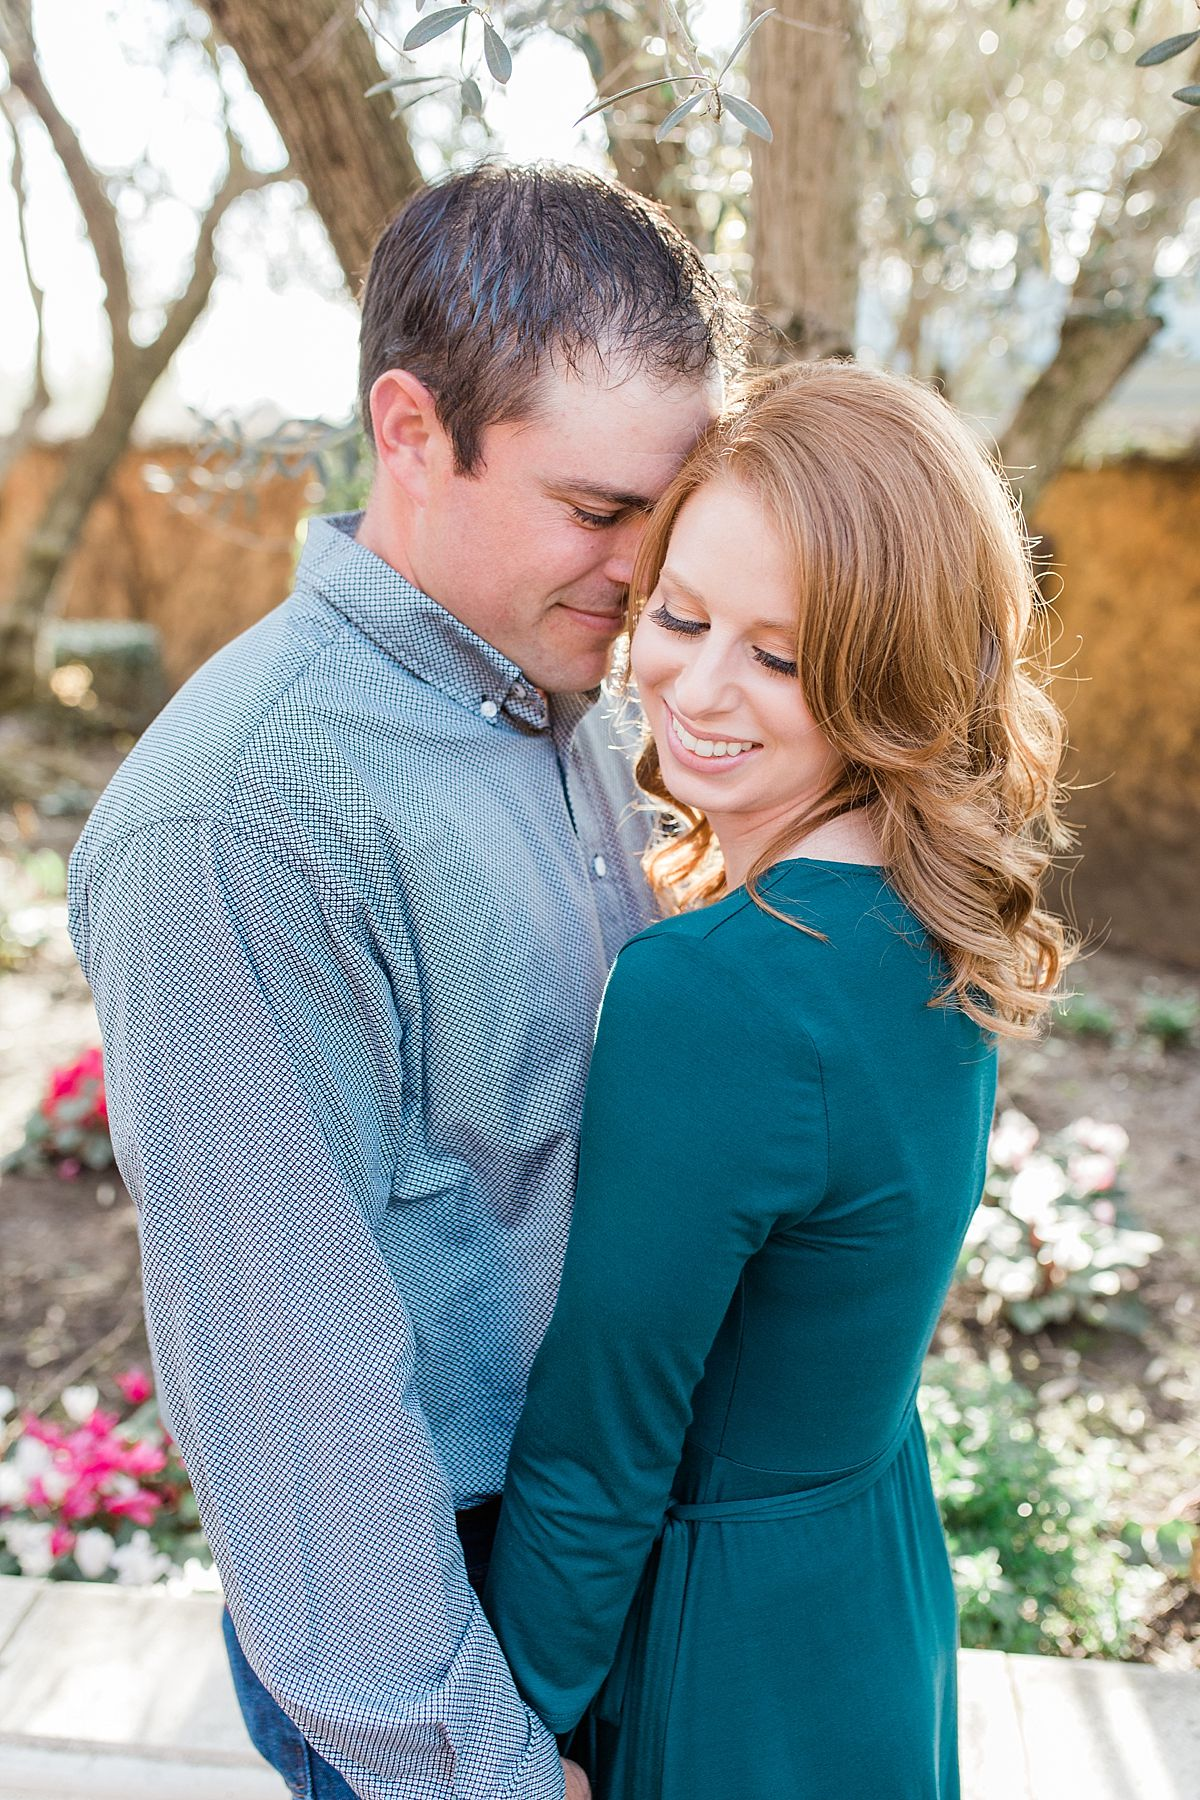 Viaggio Winery Engagement Session - Liz and TJ - Lodi Winery Wedding Photographer_0027.jpg